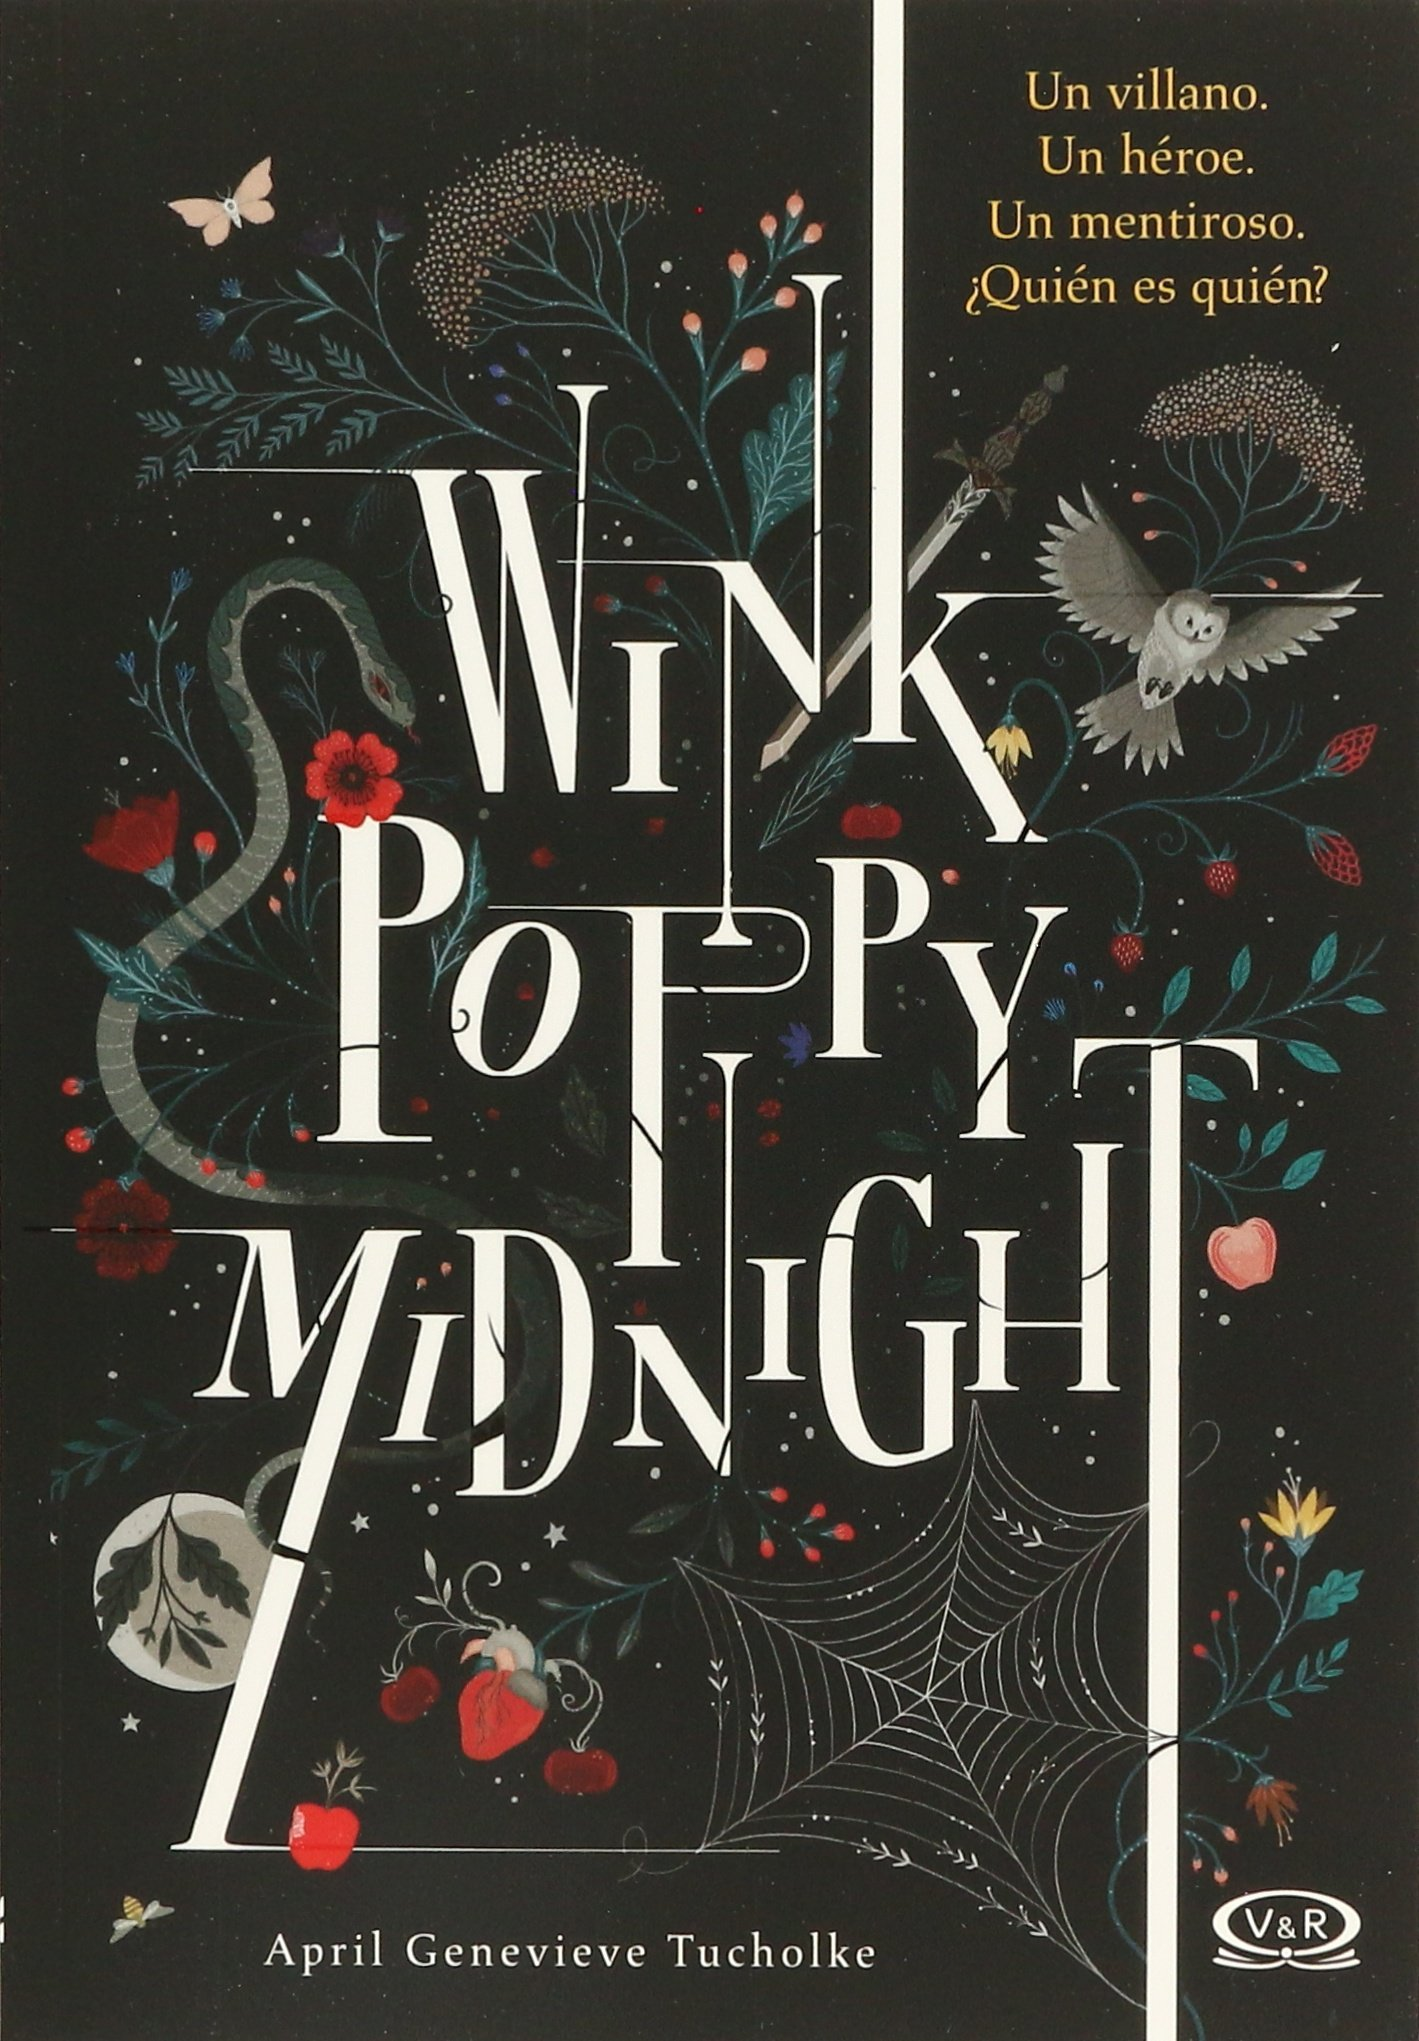 SPA-WINK POPPY MIDNIGHT